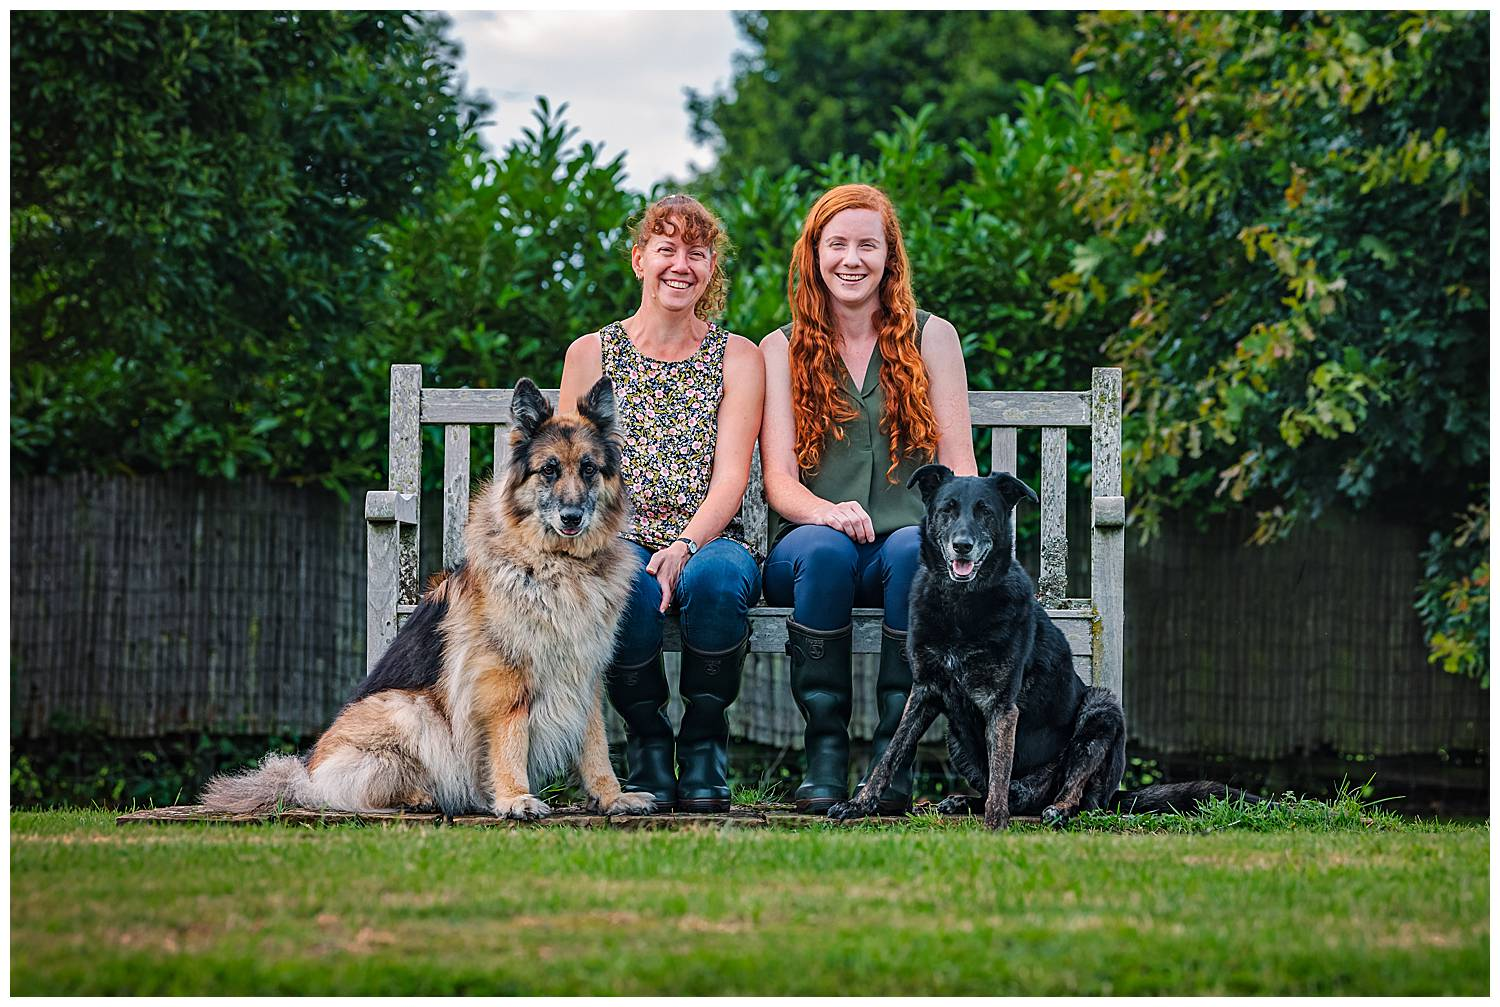 Mother and daughter sat on a wooden bench with two dogs